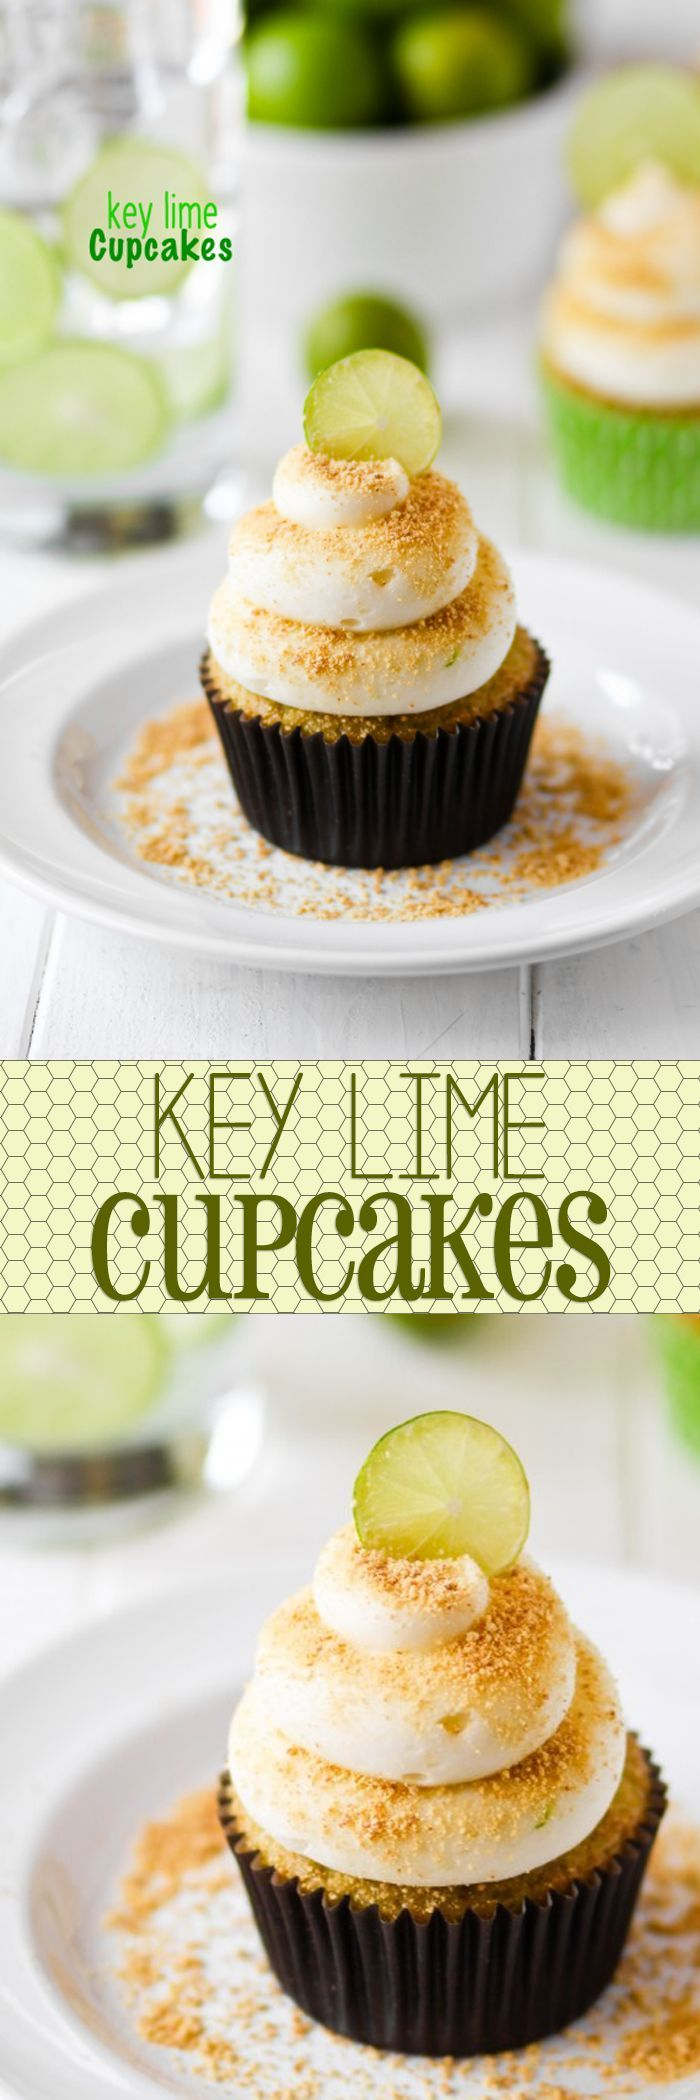 Key Lime Cupcakes!! These look like just the thing for my Spring craving!!